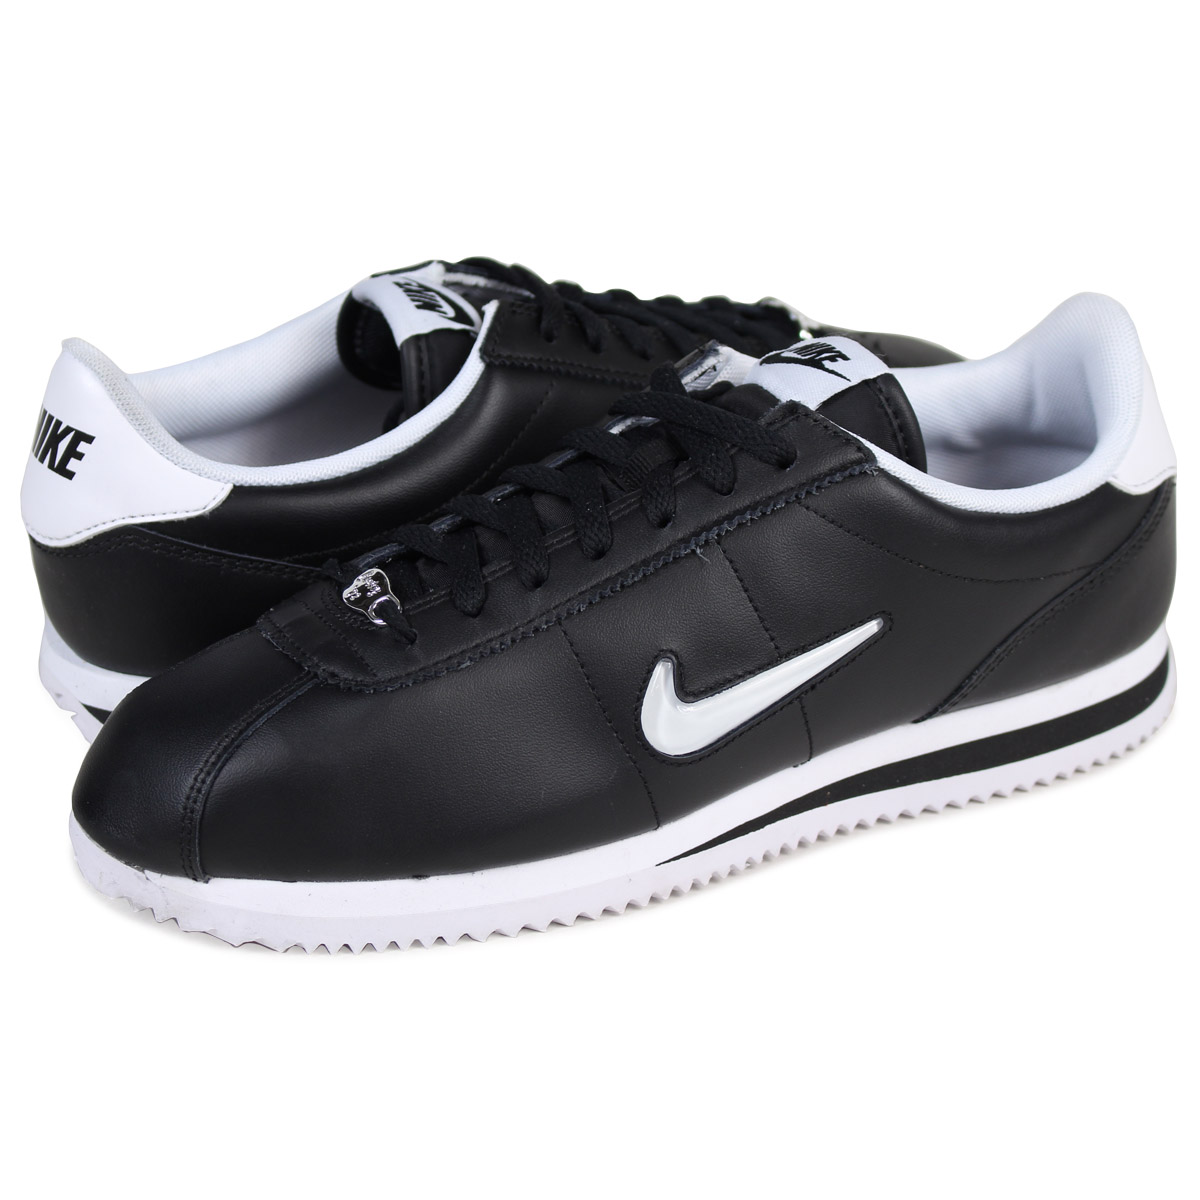 reputable site 9ea8b 1f723 NIKE CORTEZ BASIC JEWEL ナイキコルテッツスニーカー 833,238-002 men's shoes black [load  planned Shinnyu load in reservation product 10/13 ...